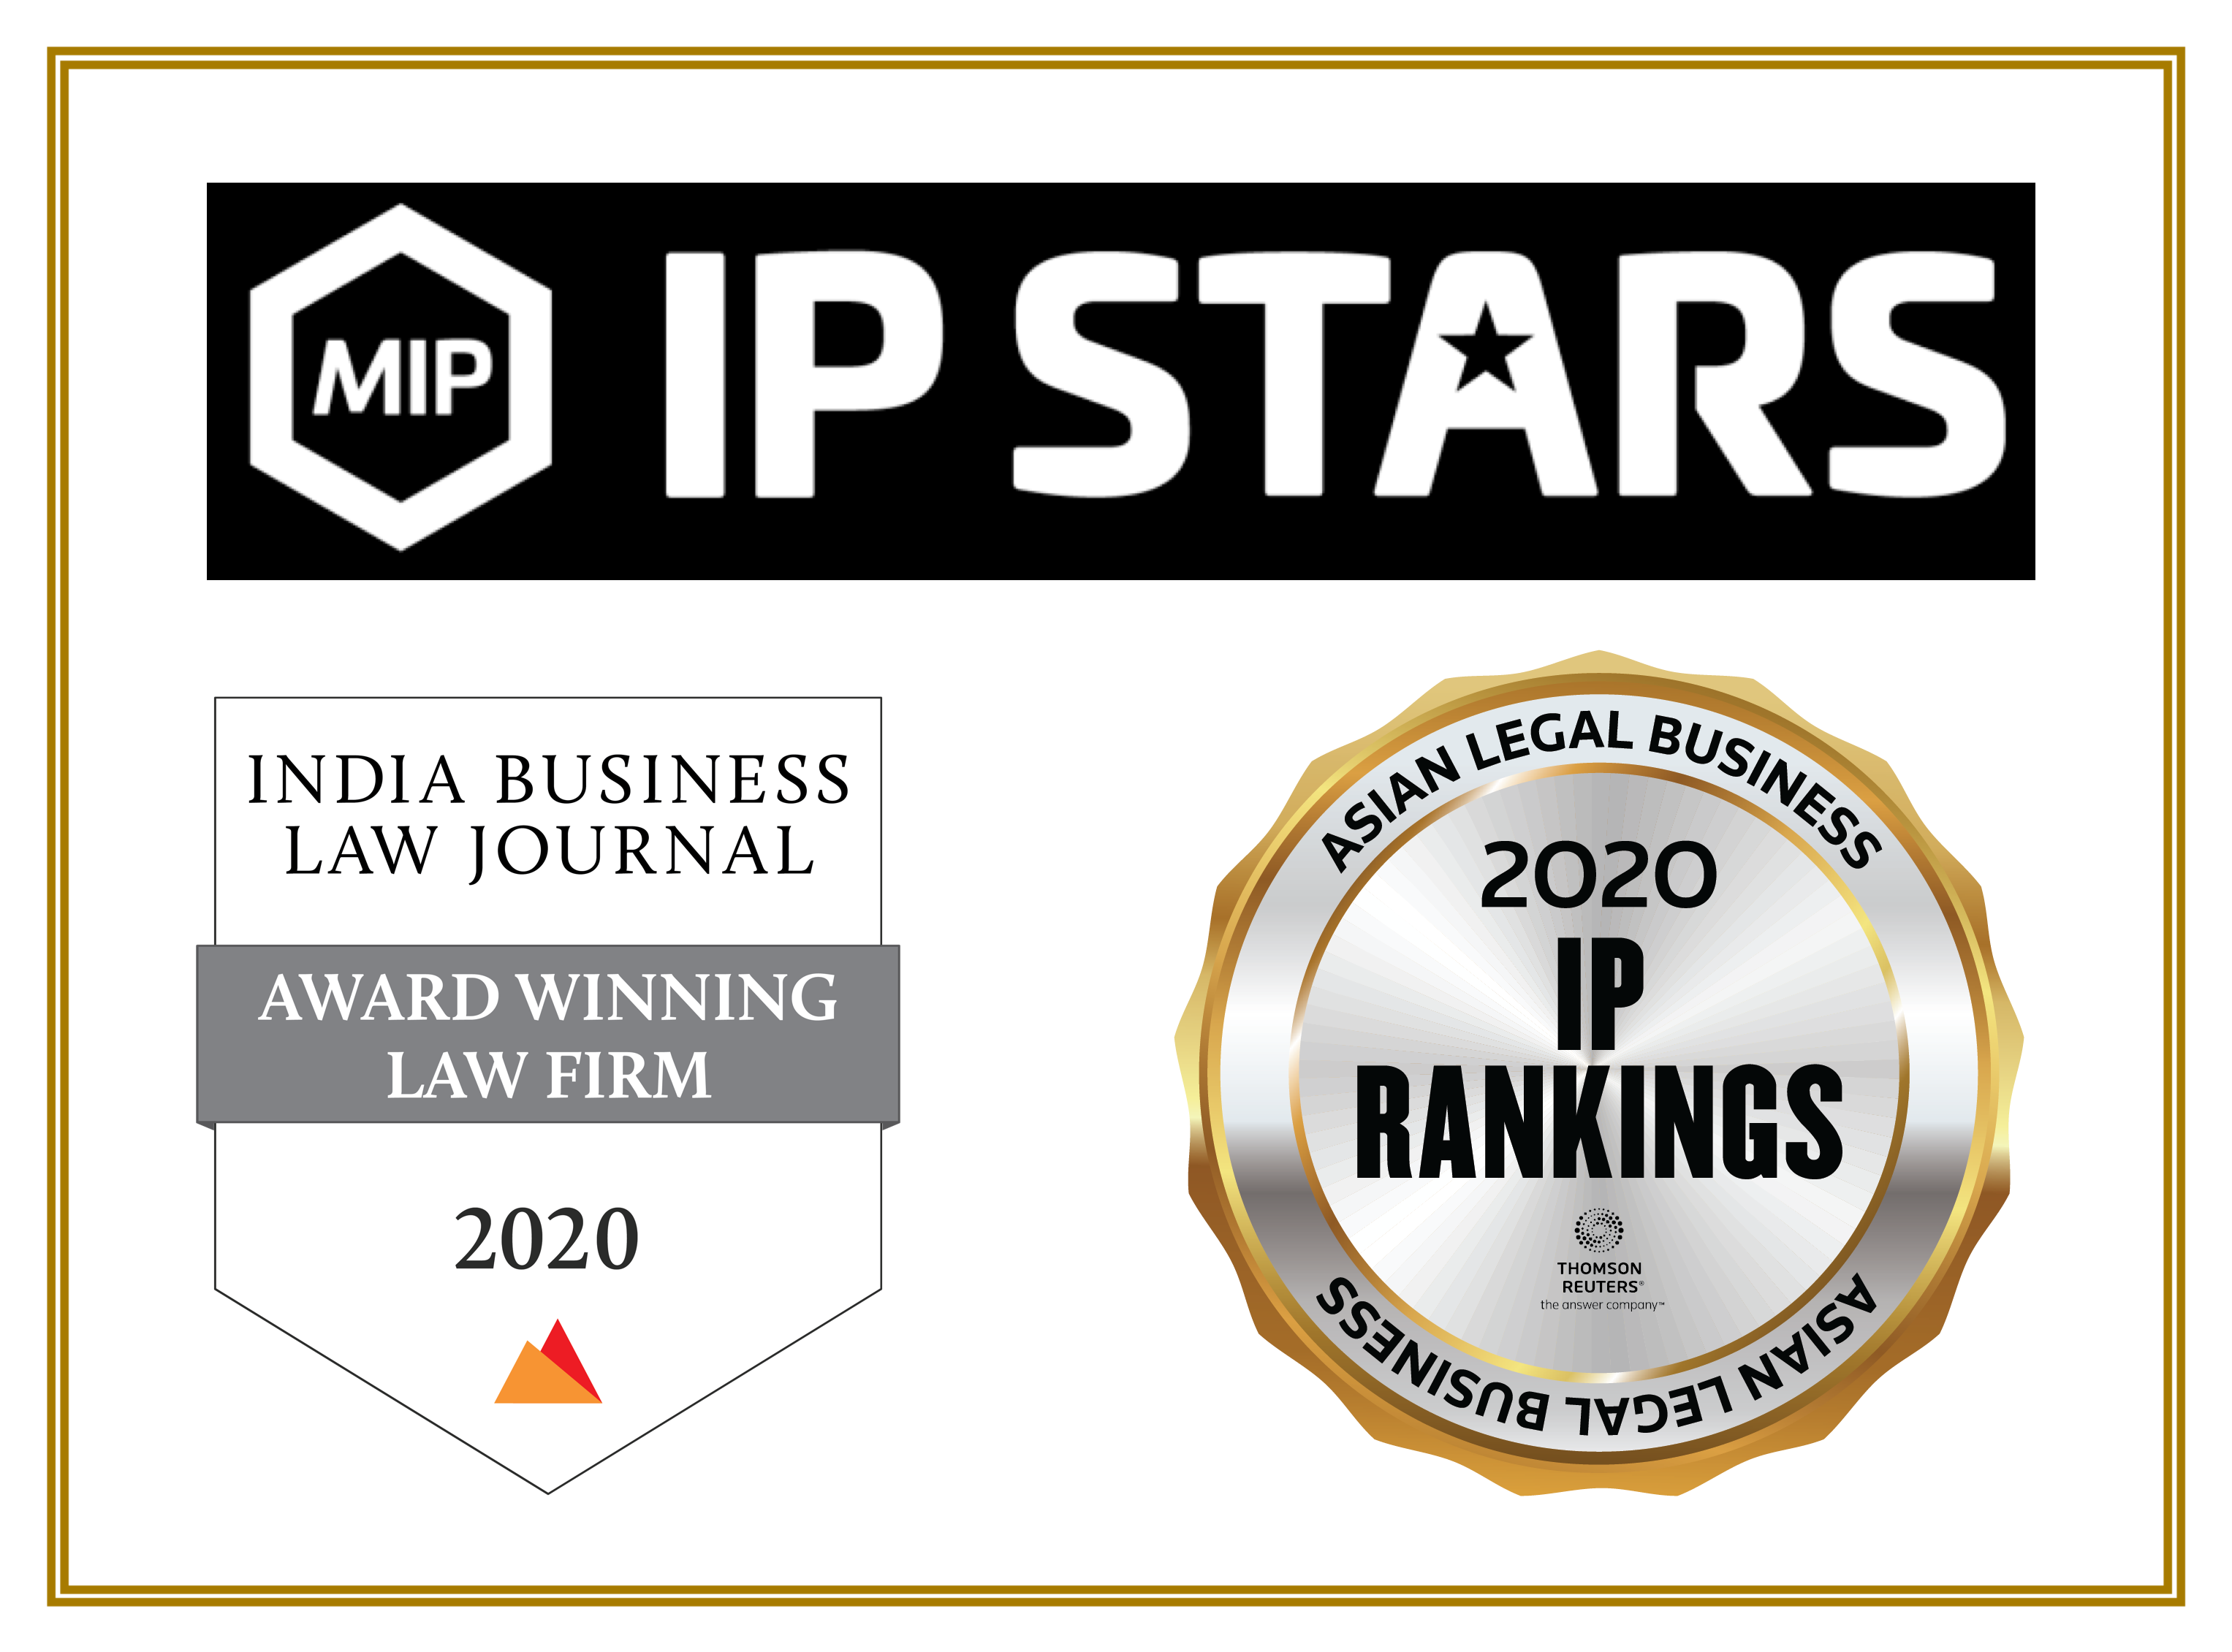 Managing IP's IP STARS, 2020 Indian Law Firm Awards (IBLJ) and more….